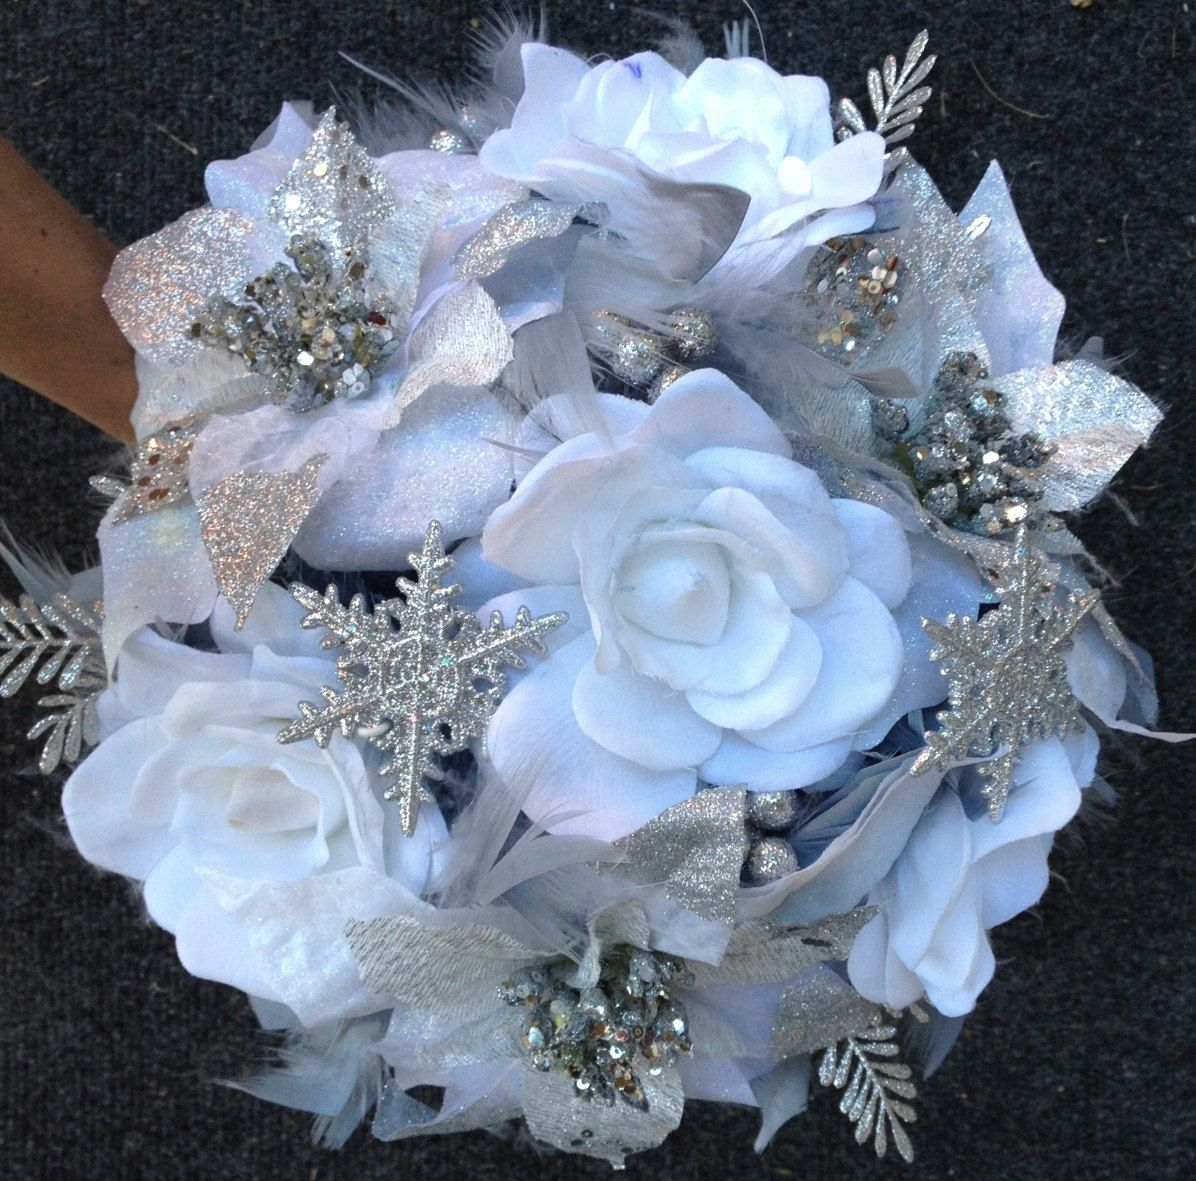 Wonderland Winter wedding flowers pictures advise to wear for summer in 2019